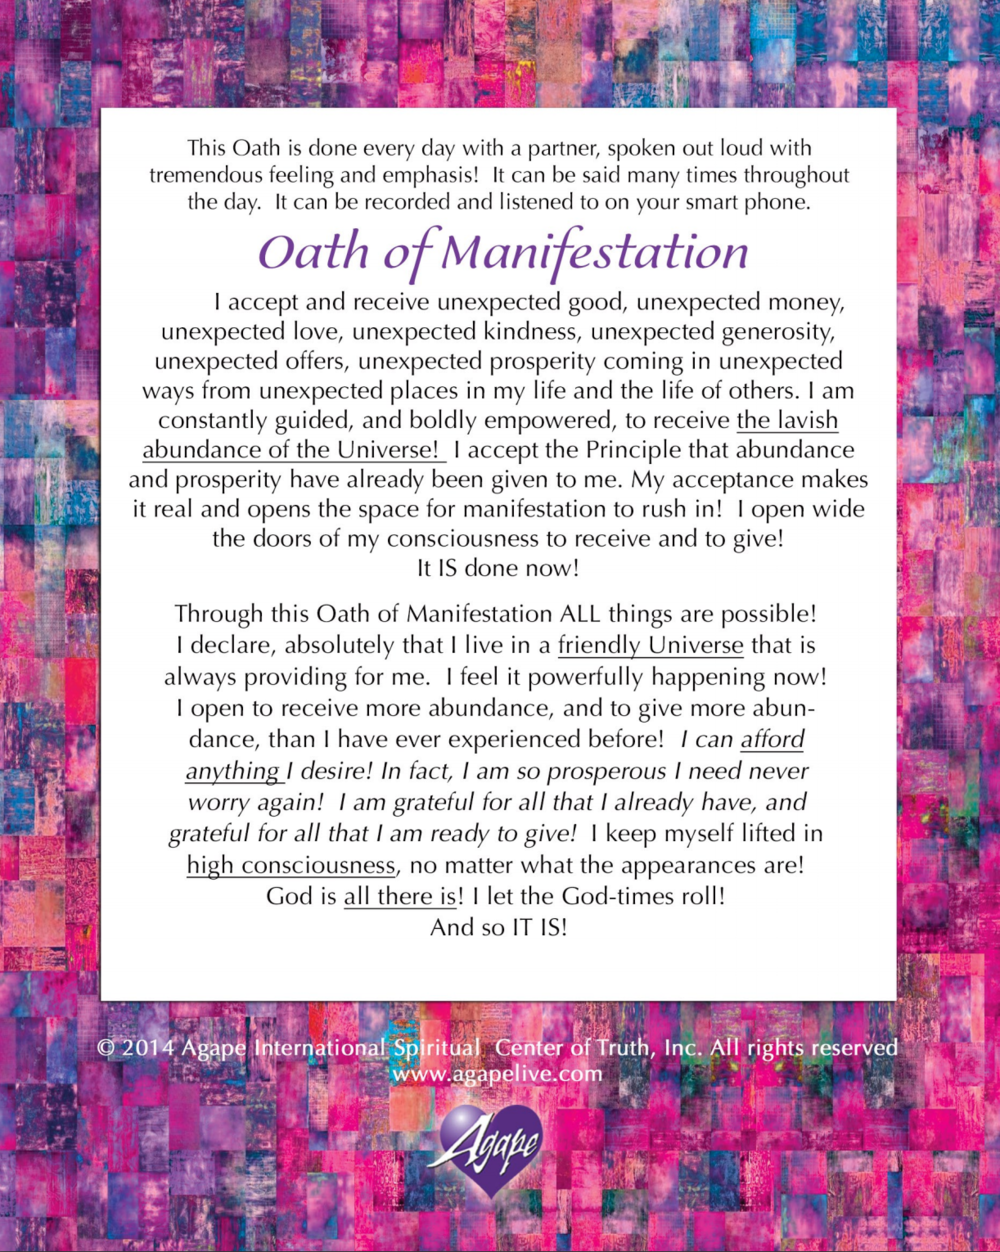 Increasing Abundance with the Oath of Manifestation from Agape Spiritual Center